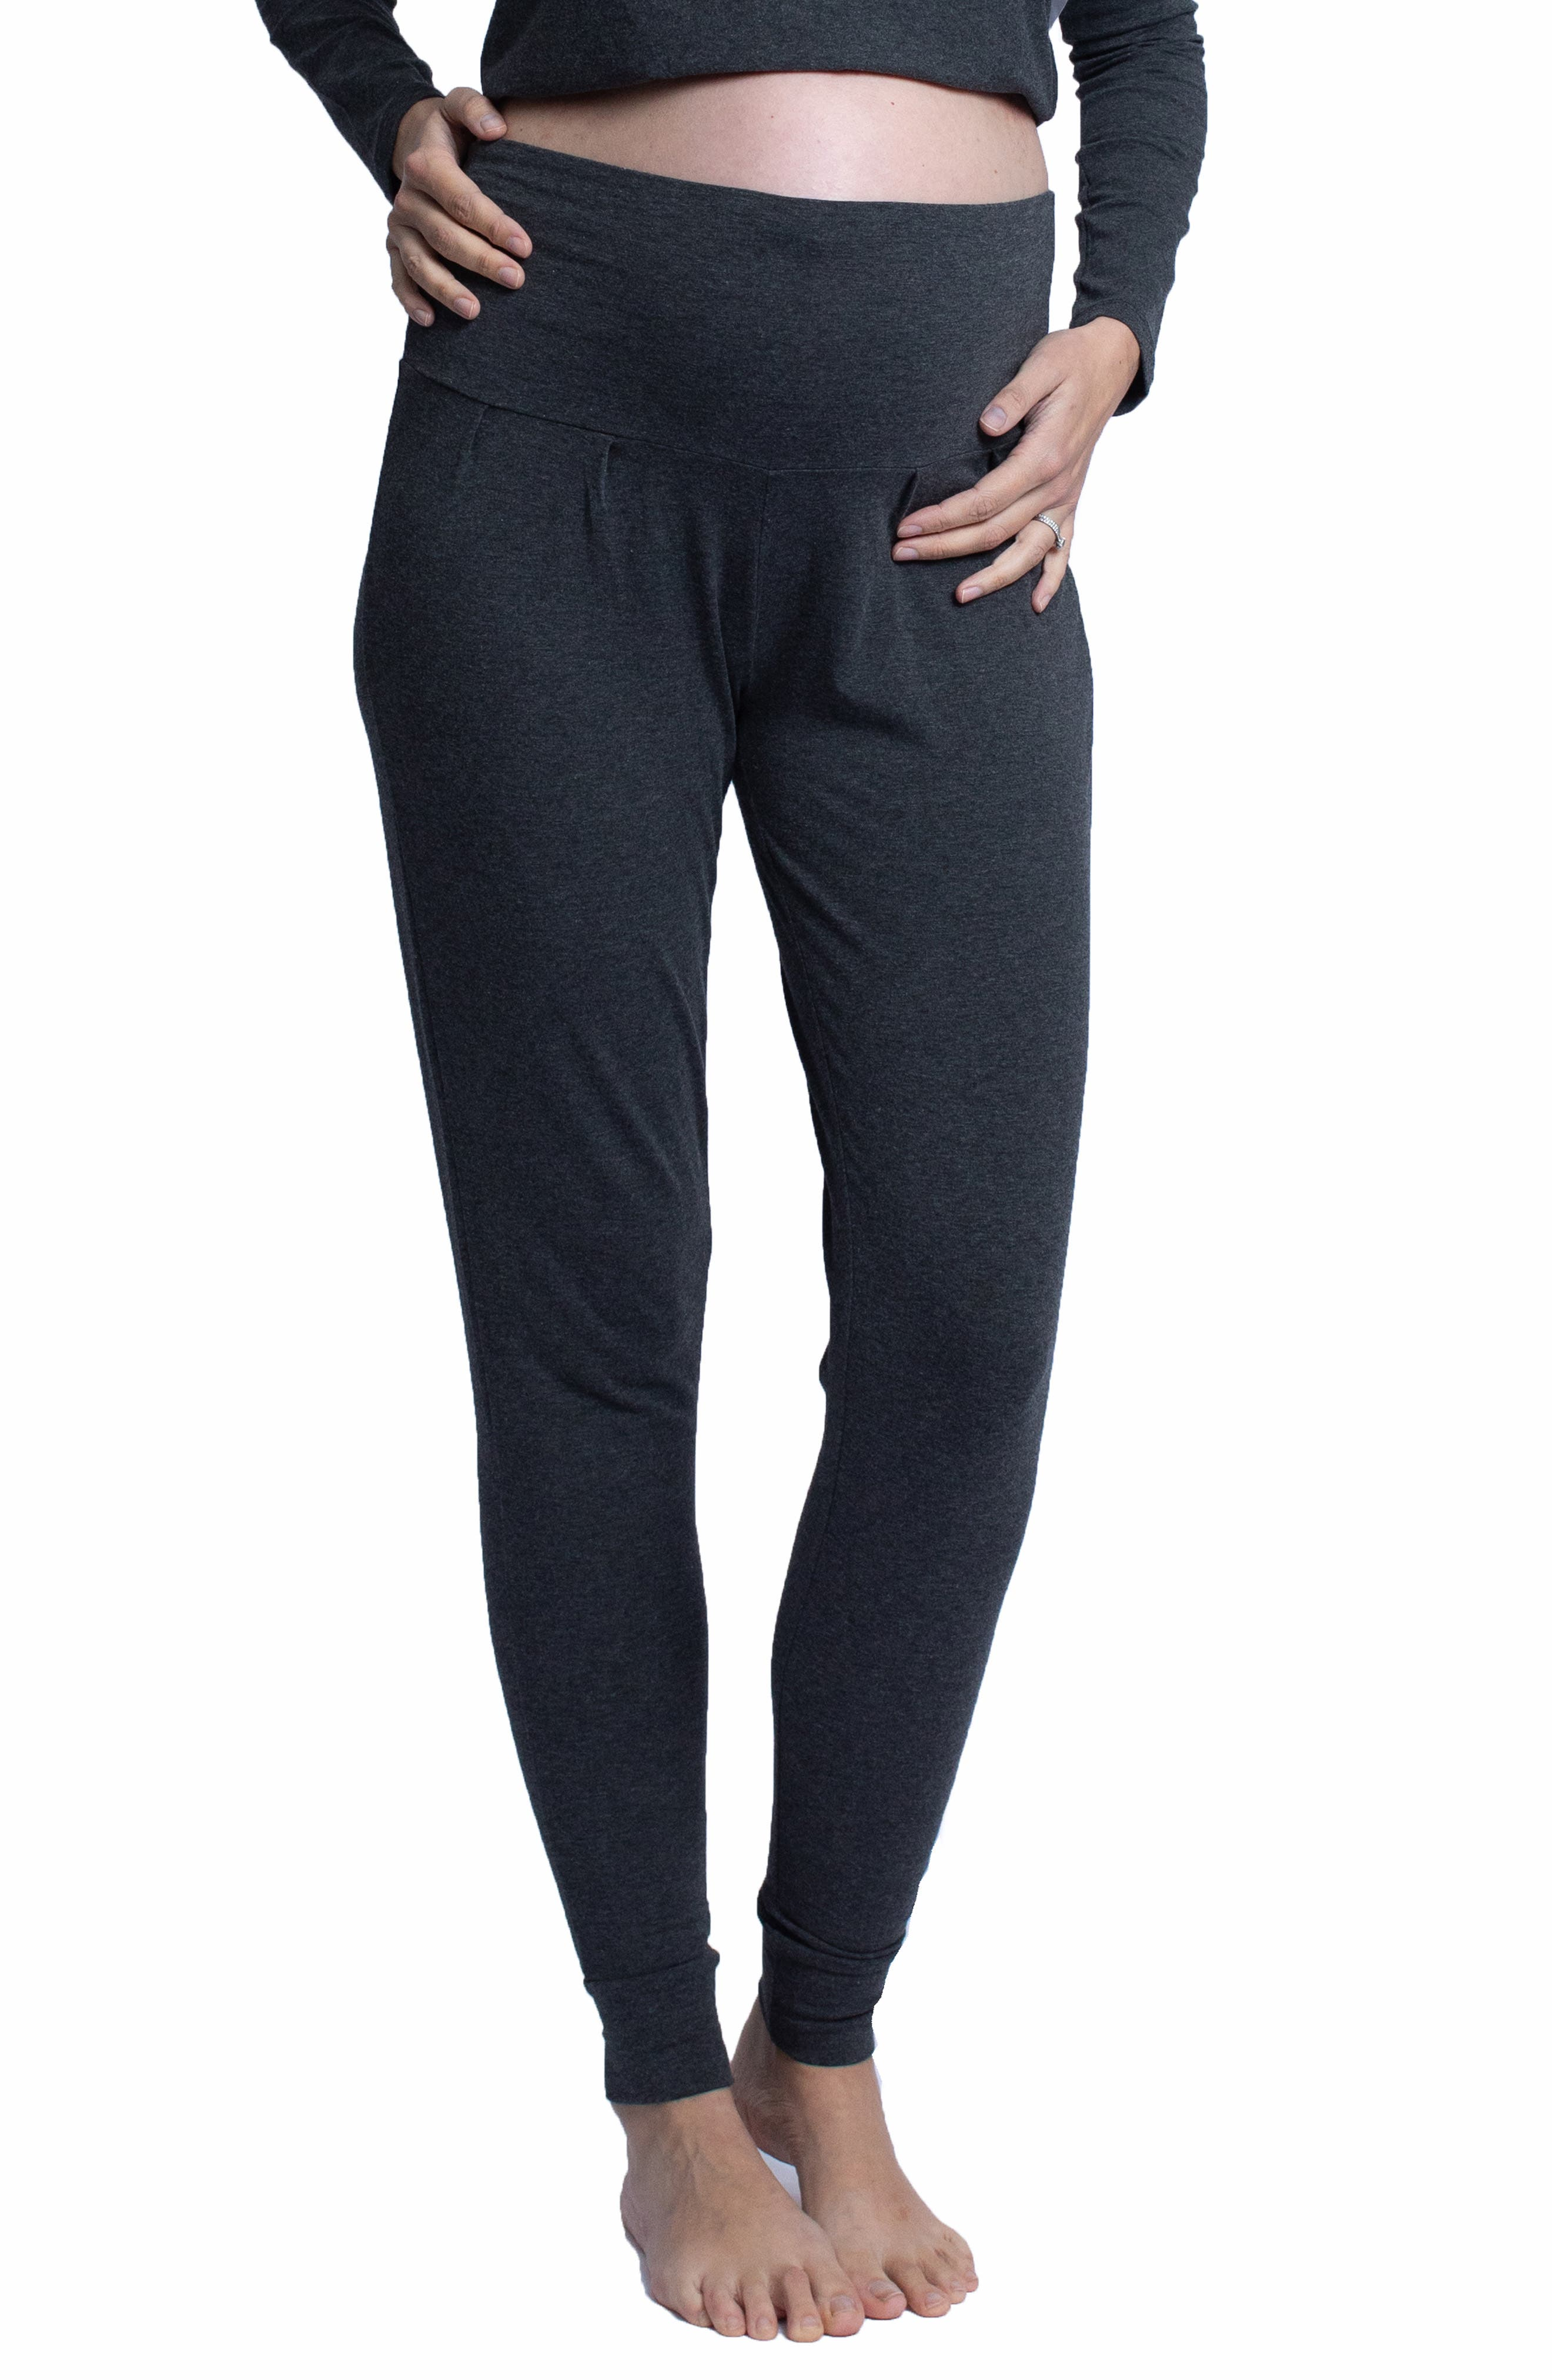 Women's Angel Maternity Tapered Knit Maternity Pants